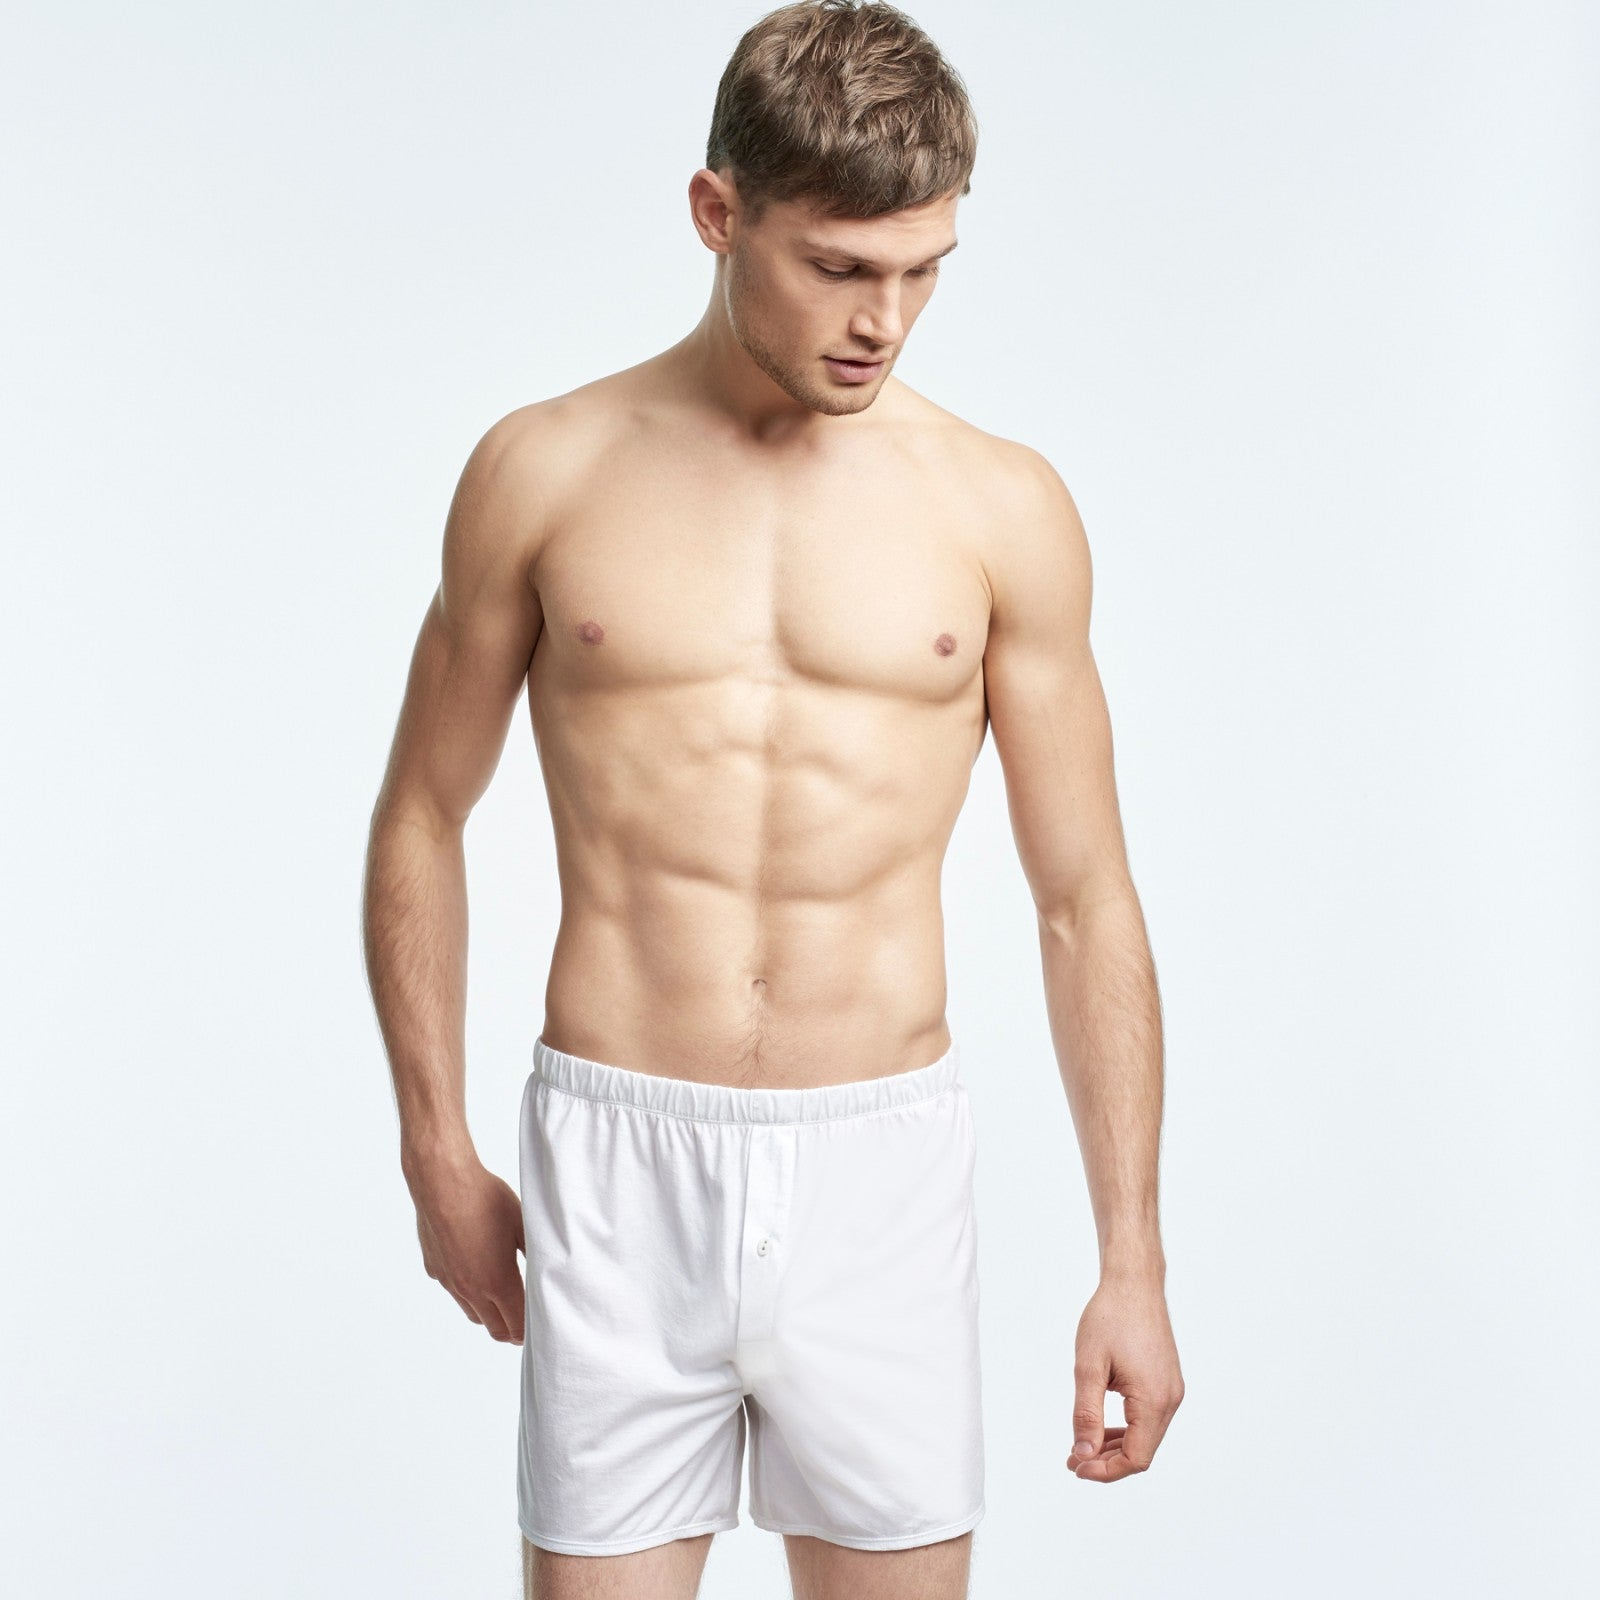 LYNX SEA-ISLAND COTTON BOXER